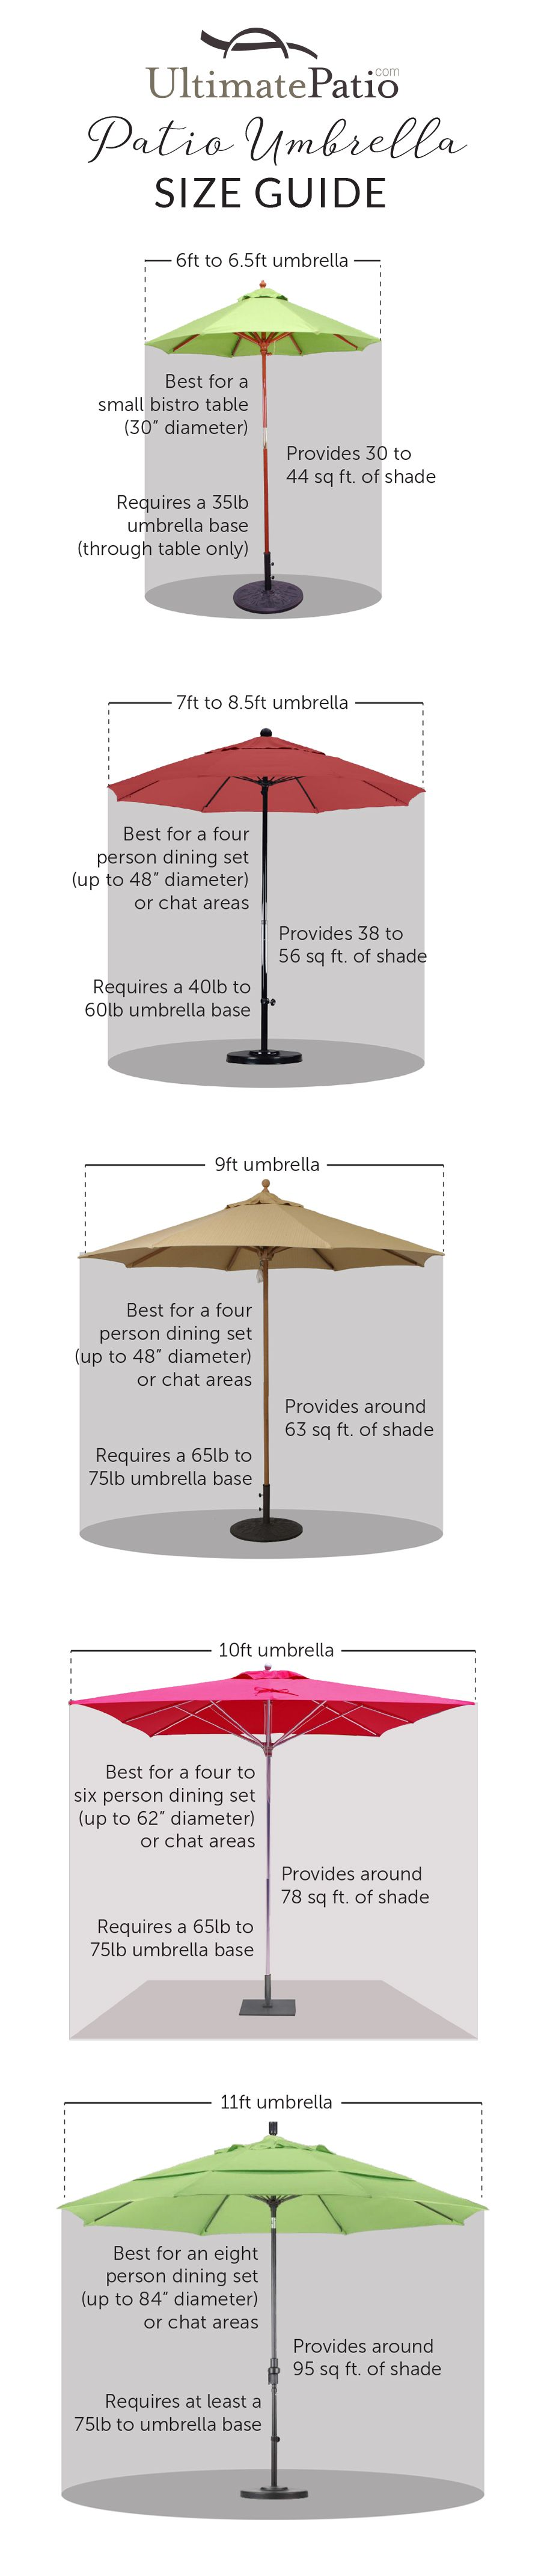 Determining The Best Size Patio Umbrella And Base For An Outdoor Space Is  An Important Part